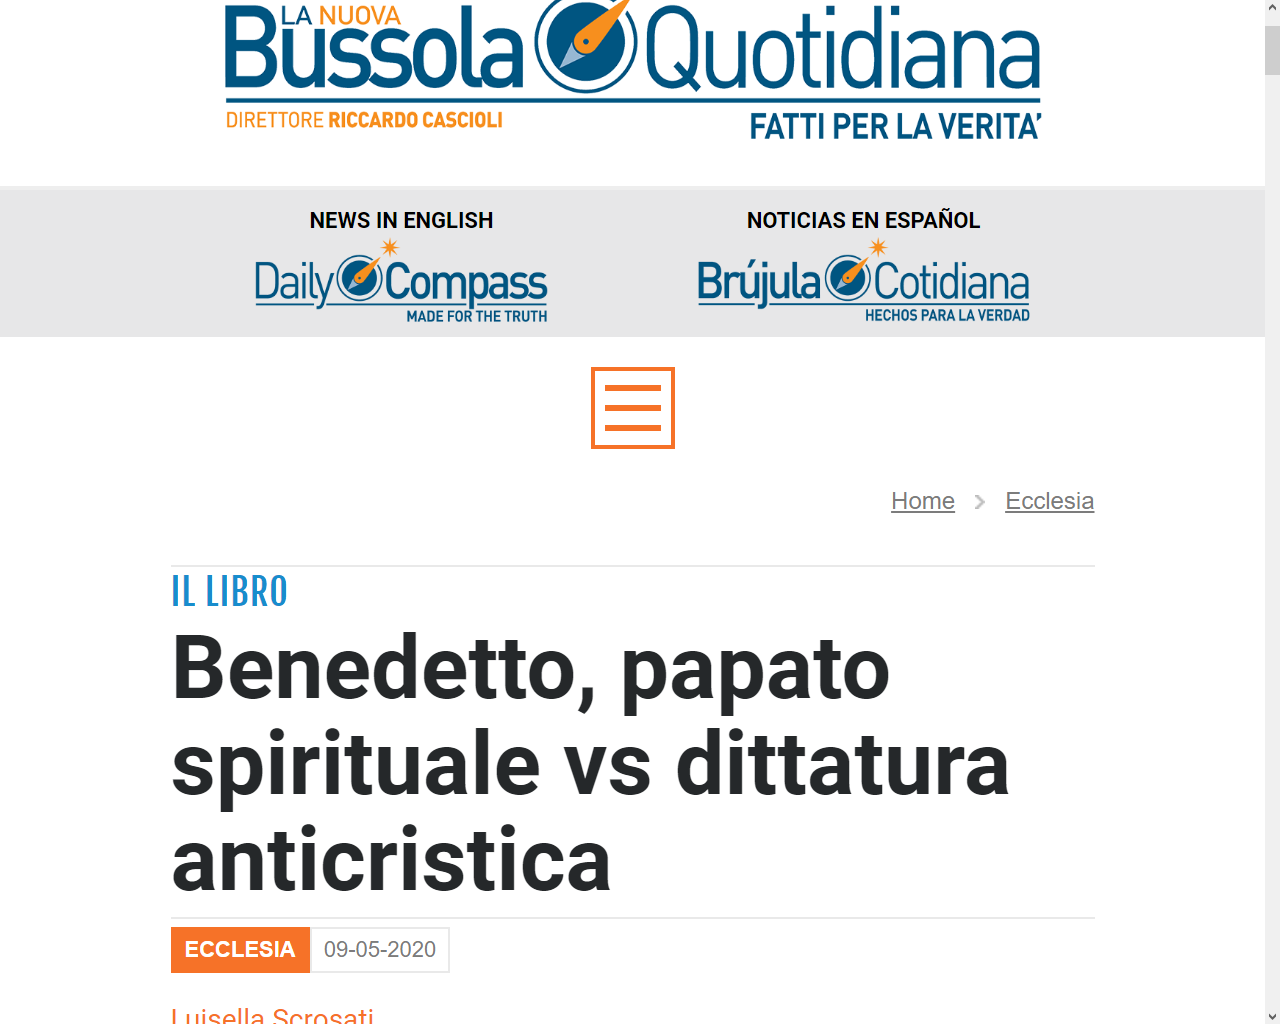 https://www.lanuovabq.it/it/benedetto-papato-spirituale-vs-dittatura-anticristica